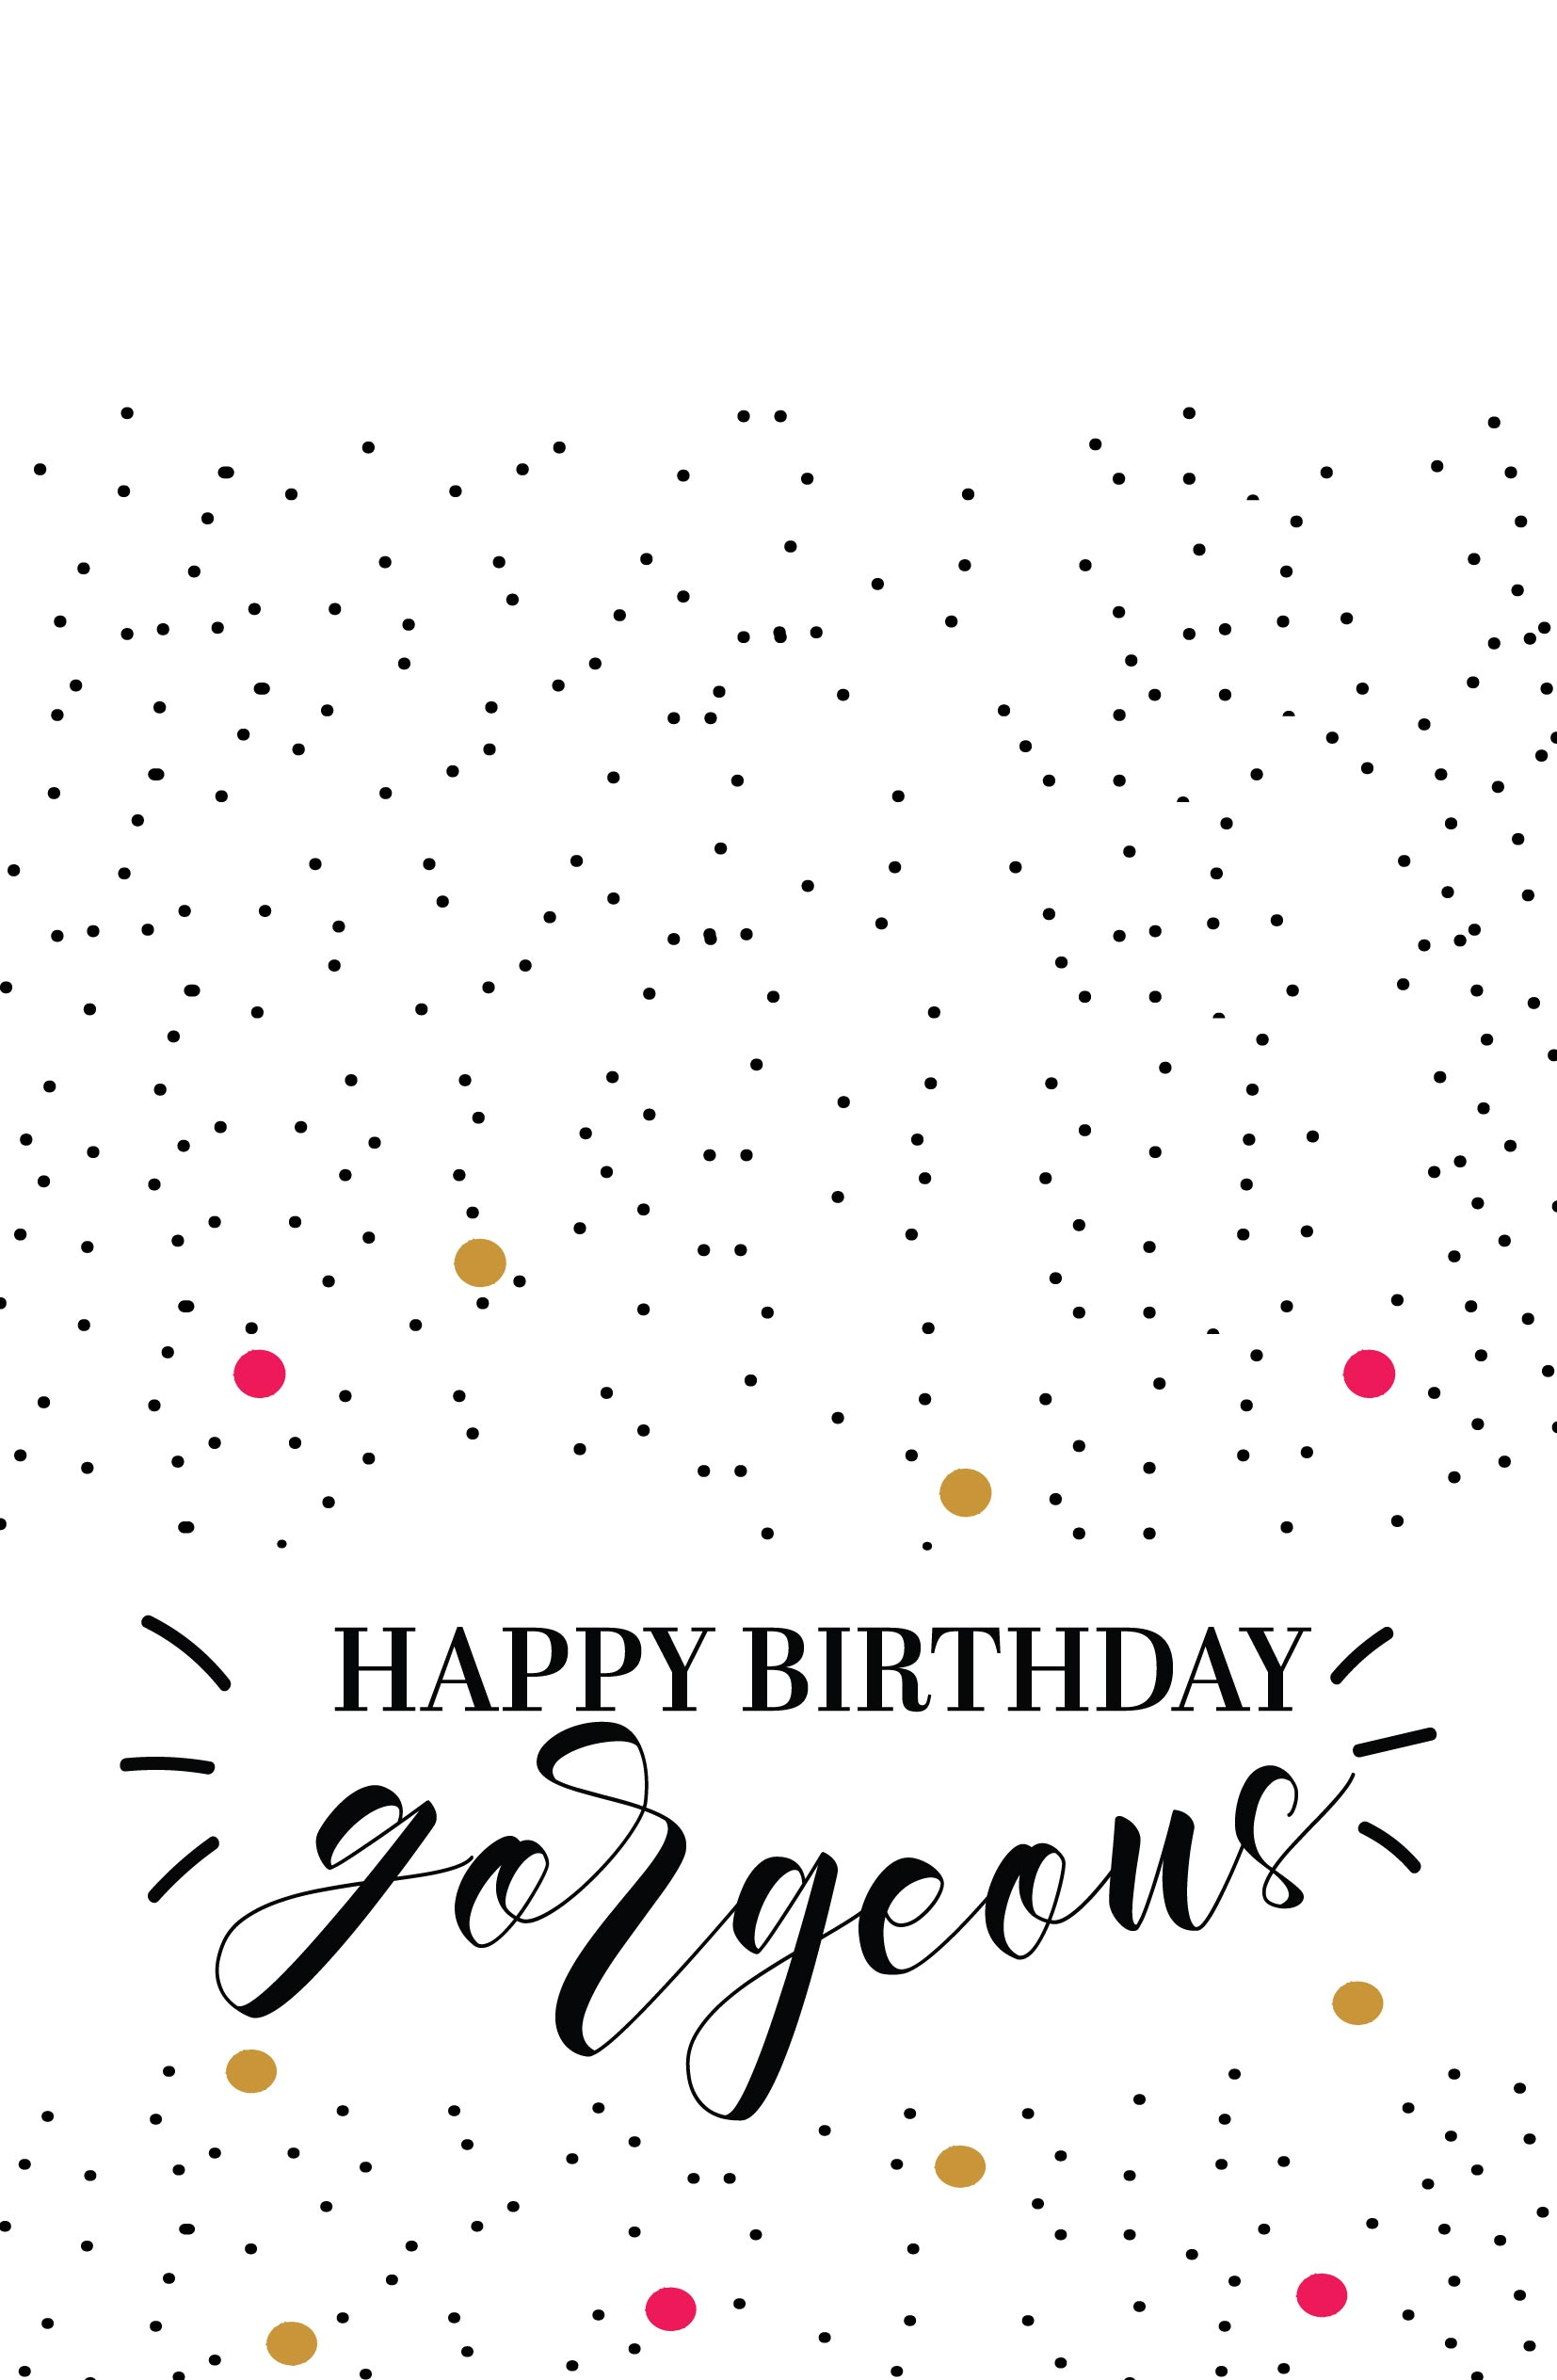 Happy Birthday Gorgeous - Greeting